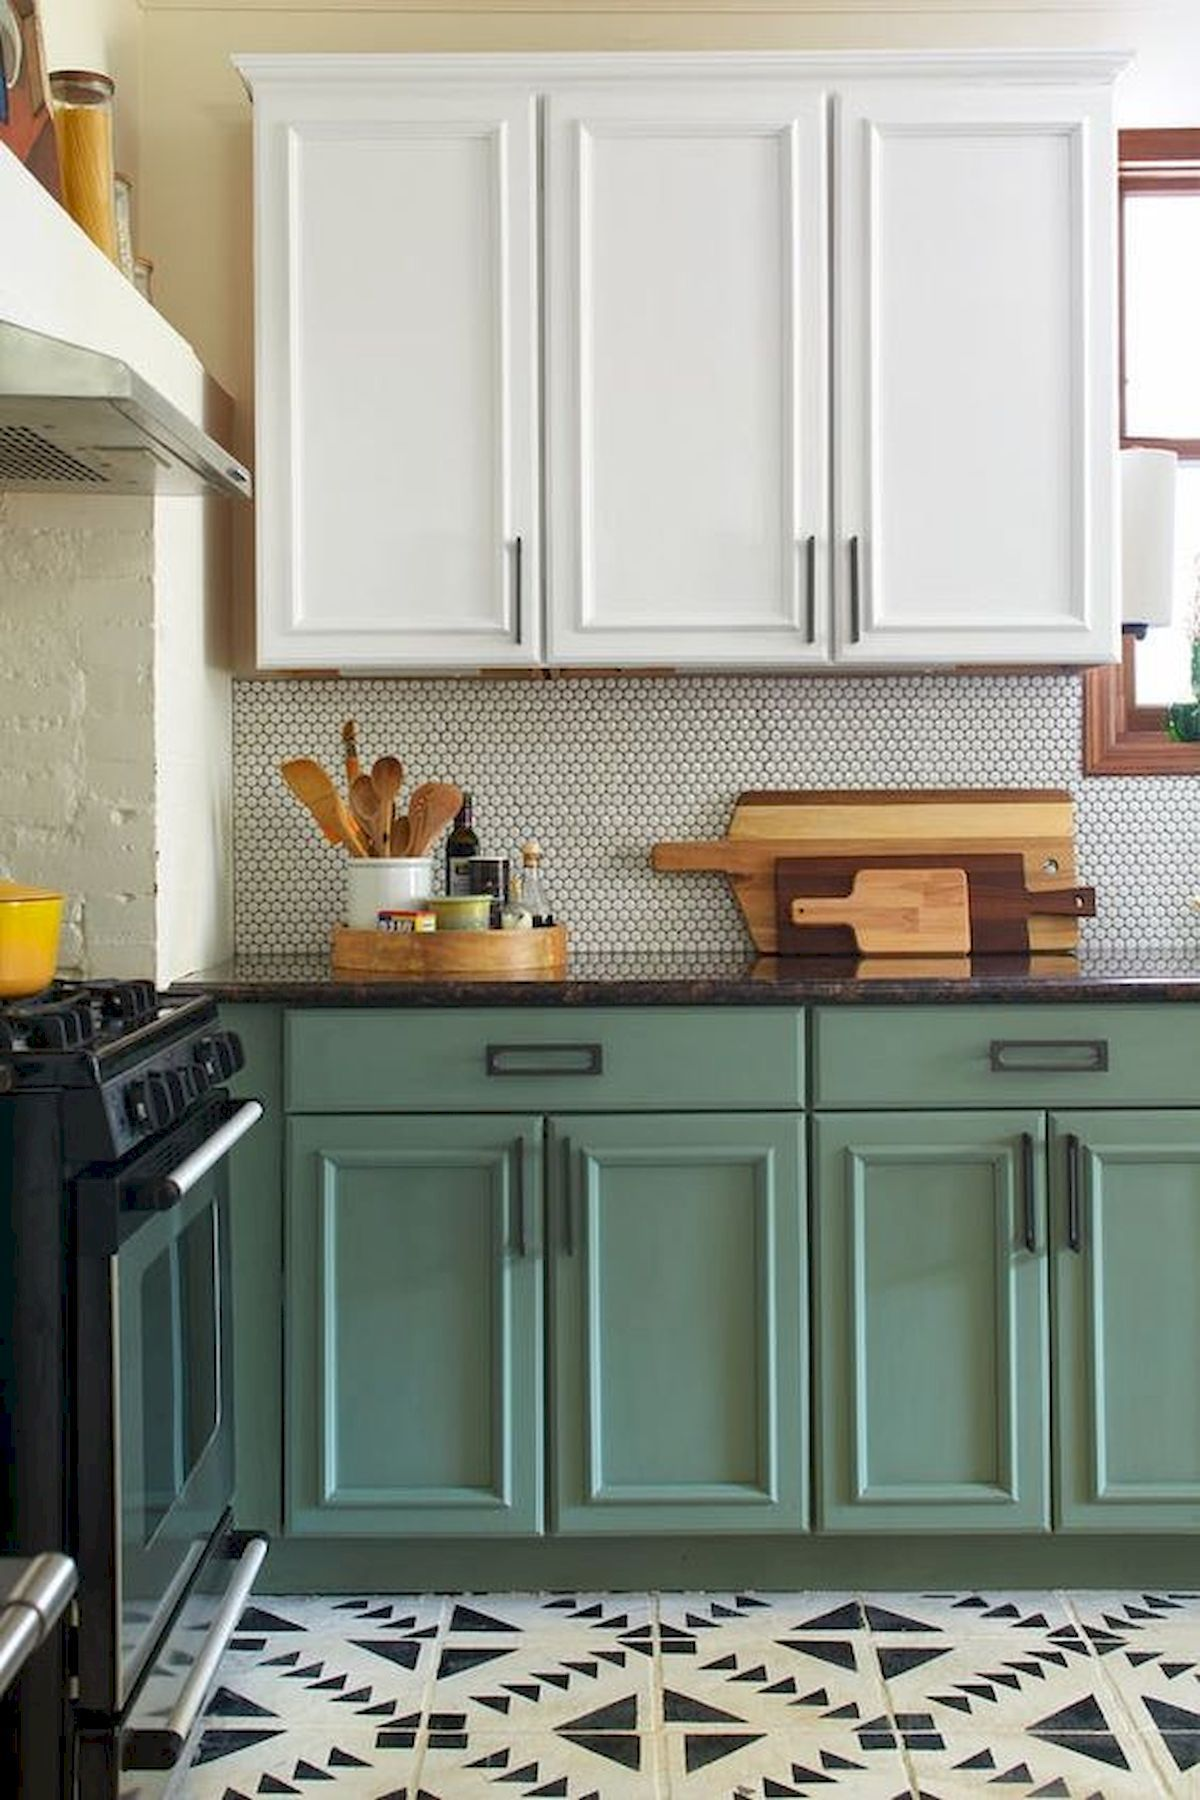 60 Schone Bemalte Kuchenschranke Two Tone Design Ideen Coachdecor Com White In 2020 Green Kitchen Cabinets Painted Kitchen Cabinets Colors Chalk Paint Kitchen Cabinets